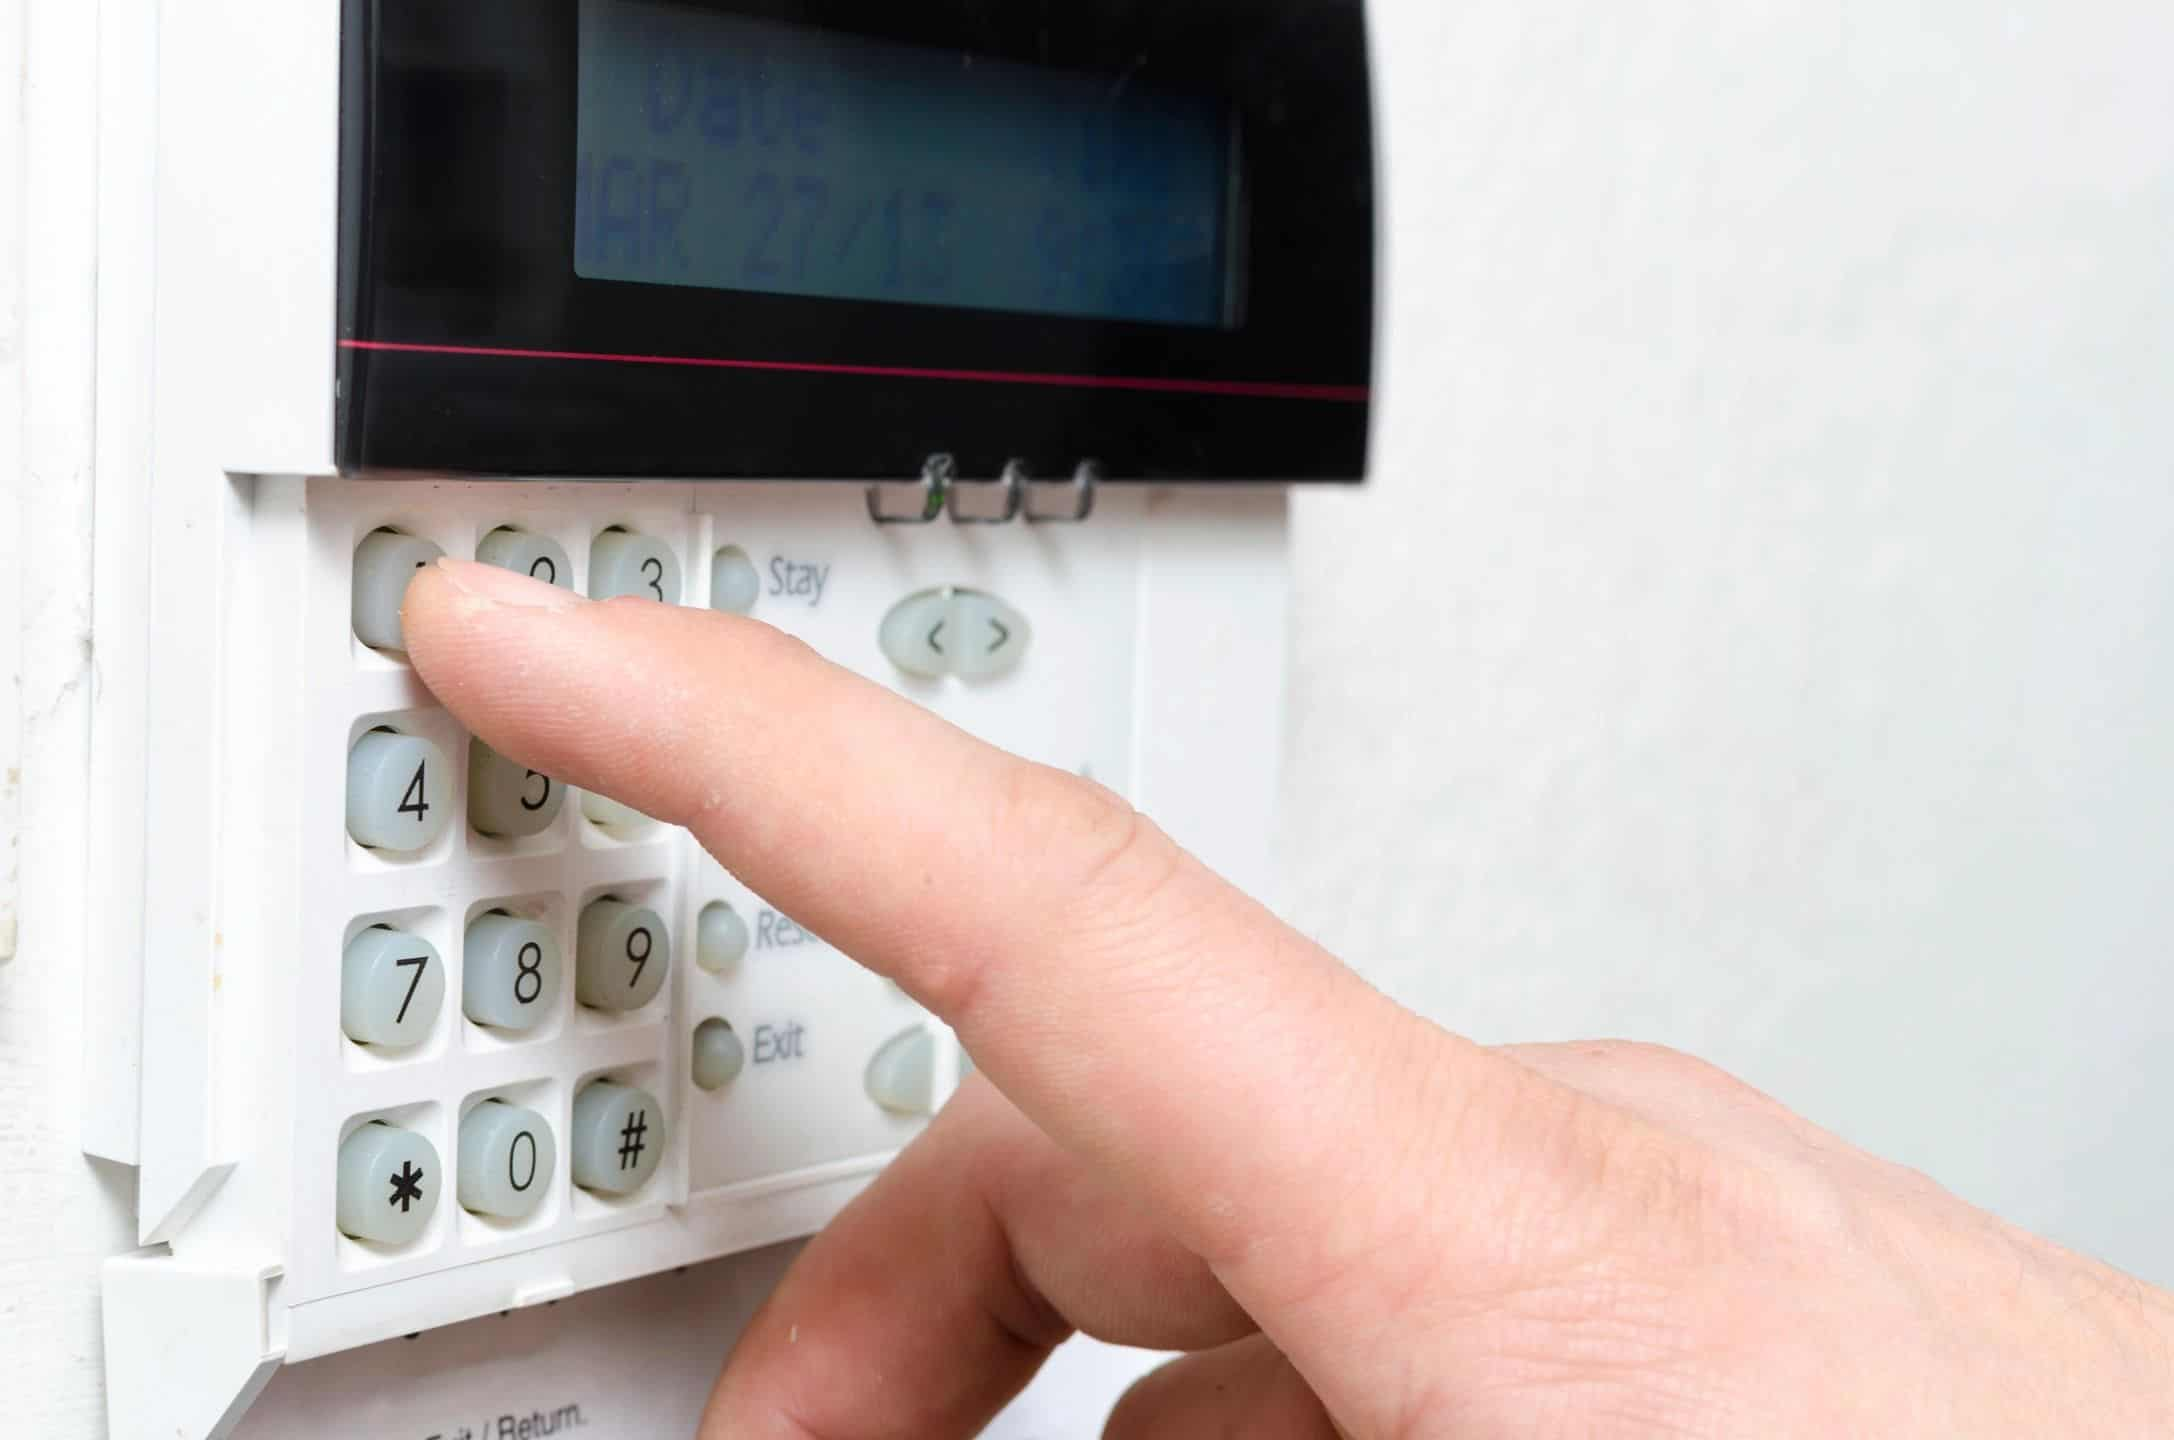 Home Security System Wired by a low voltage electrician